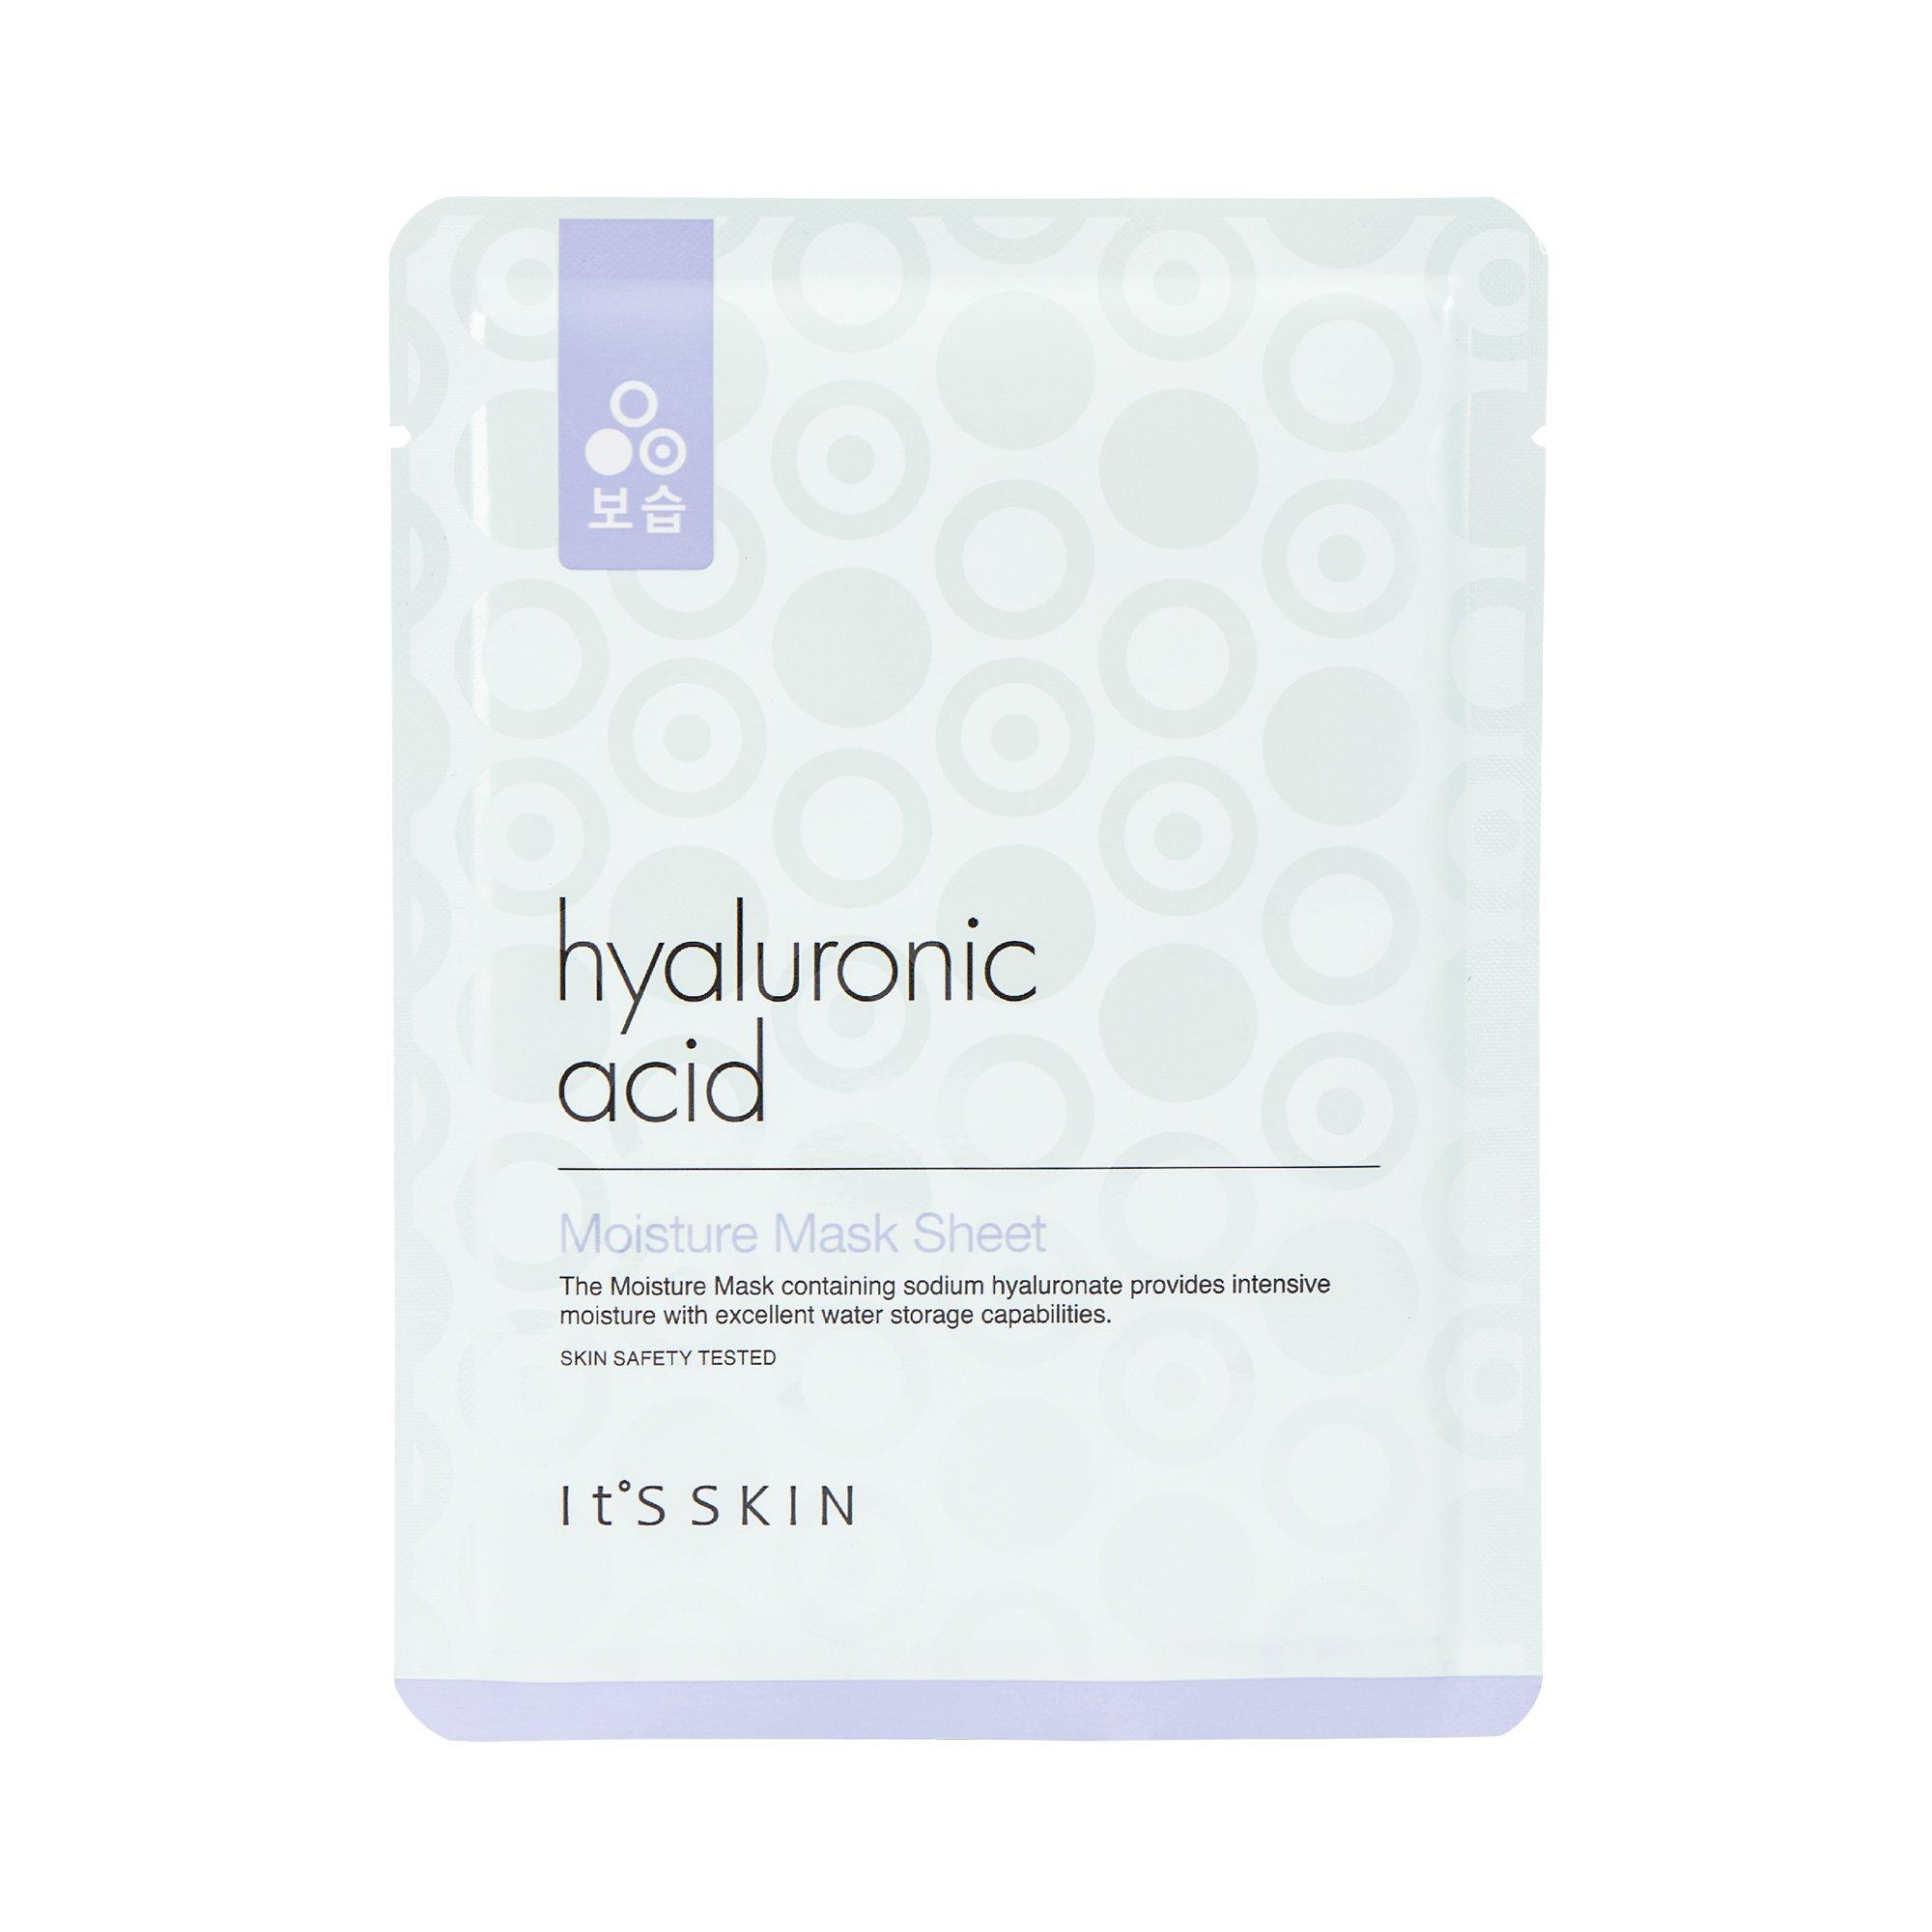 Health & Beauty > Personal Care > Cosmetics > Skin Care > Compressed Skin Care Mask Sheets - Hyaluronic Acid Moisture Mask Sheet Maska W Płachcie